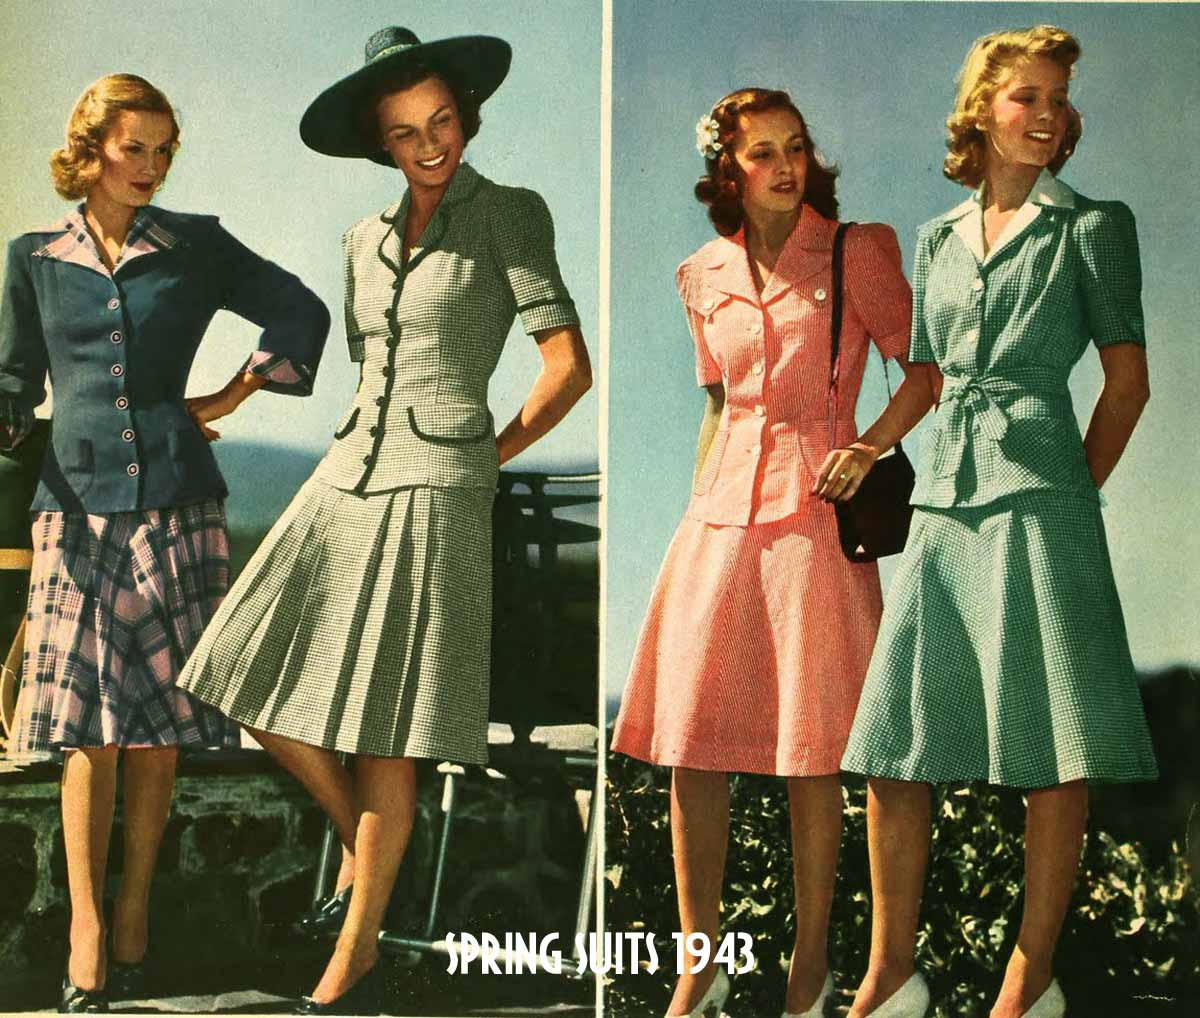 1940s-Fashion-Spring-College-Suits-for-1943.jpg